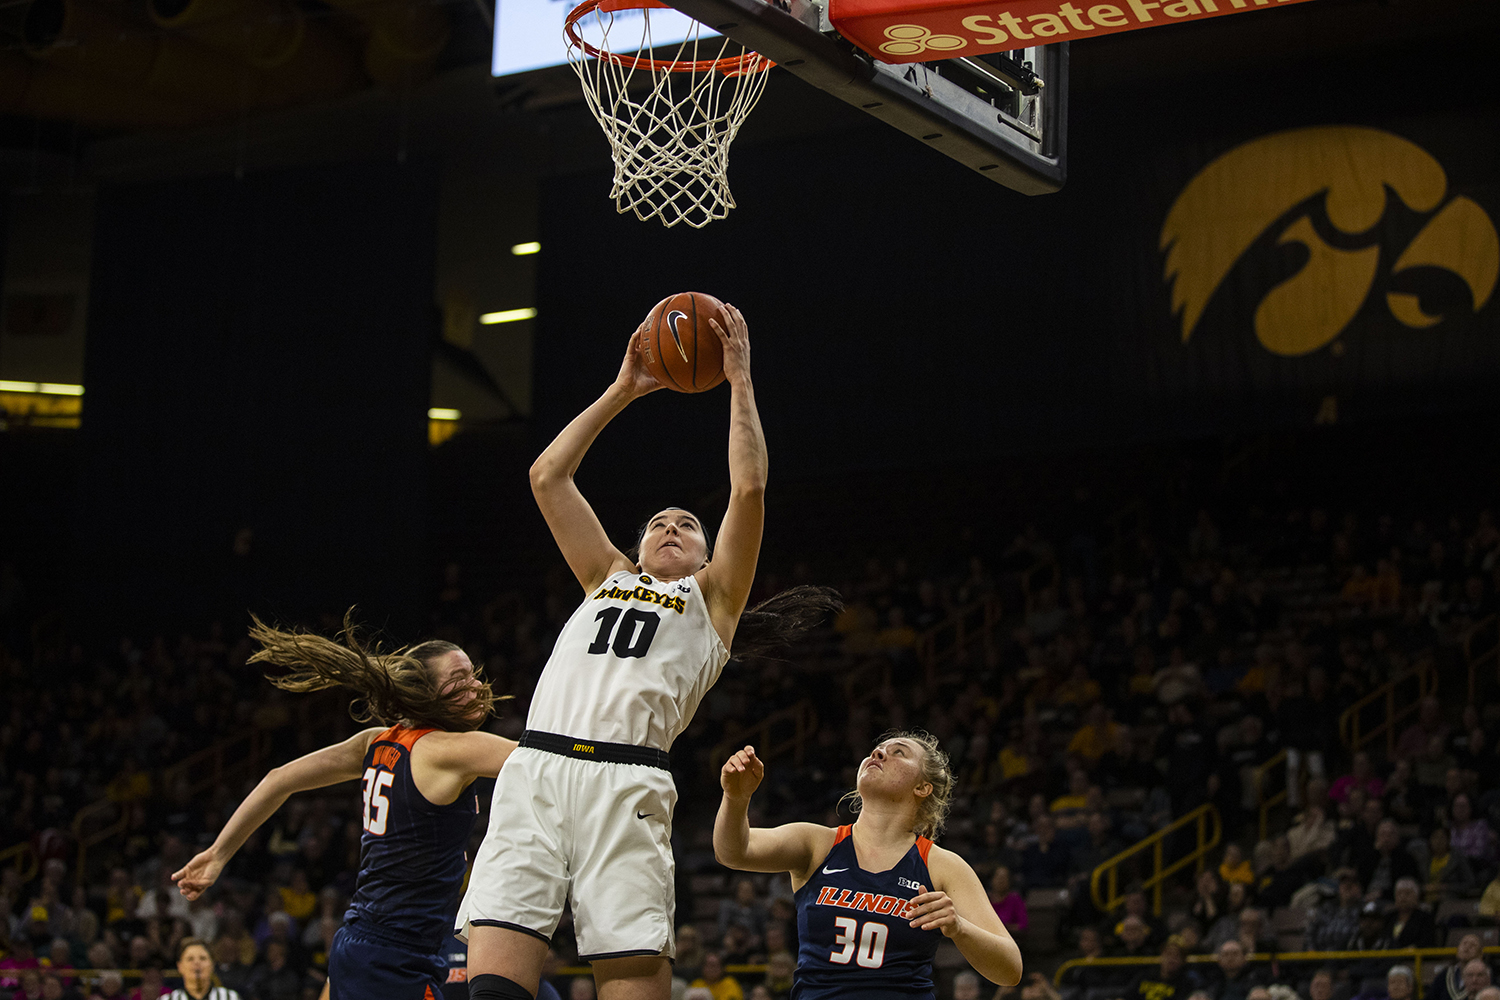 Iowa+center+Megan+Gustafson+grabs+her+own+rebound+during+the+Iowa%2FIllinois+women%27s+basketball+game+at+Carver-Hawkeye+Arena+on+Thursday%2C+February+14%2C+2019.+The+Hawkeyes+defeated+the+Fighting+Illini%2C+88-66.